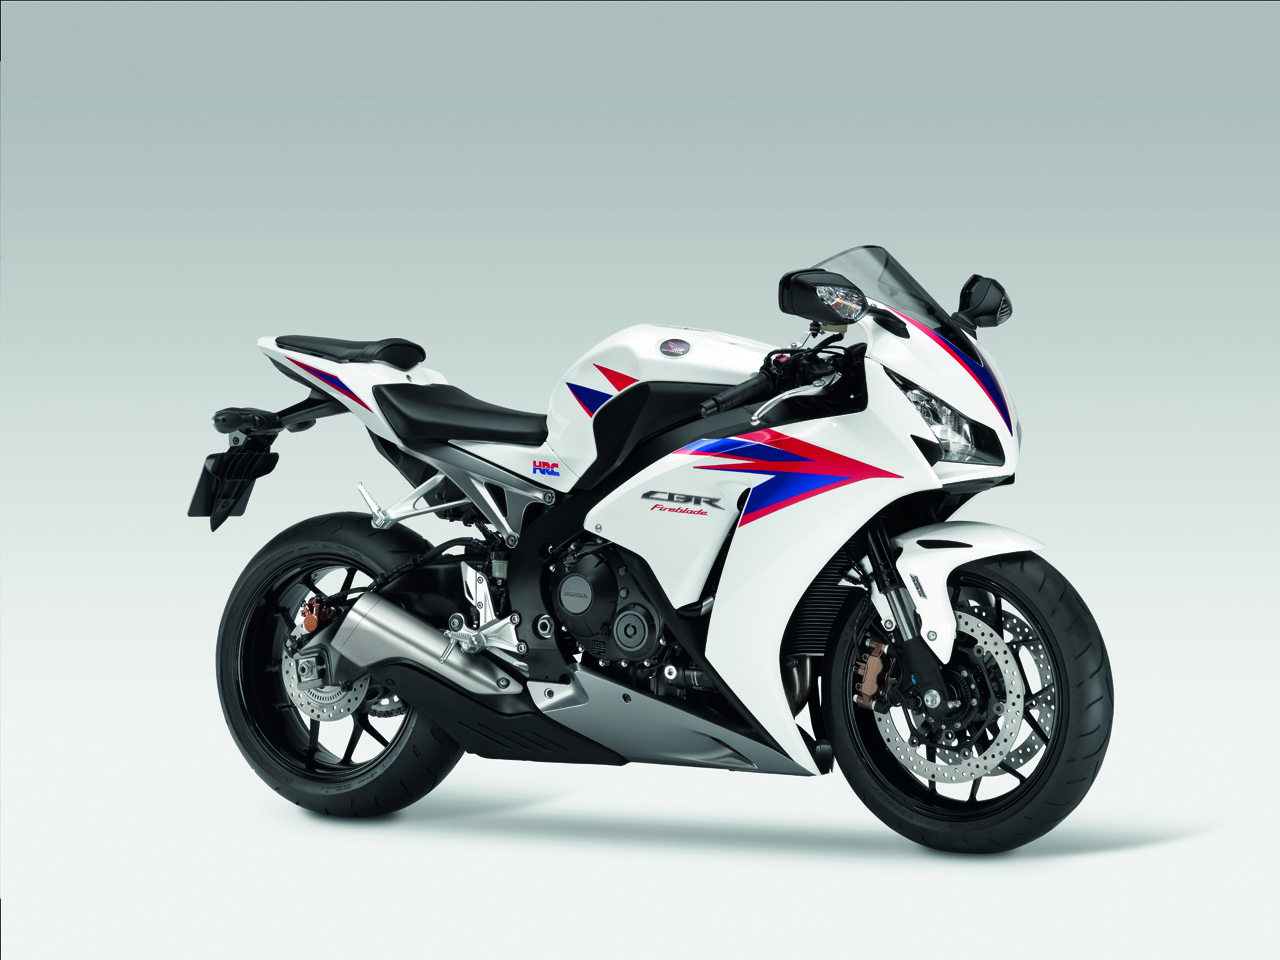 2012 Honda CBR1000RR Fireblade   Auto Car   Best Car News and Reviews